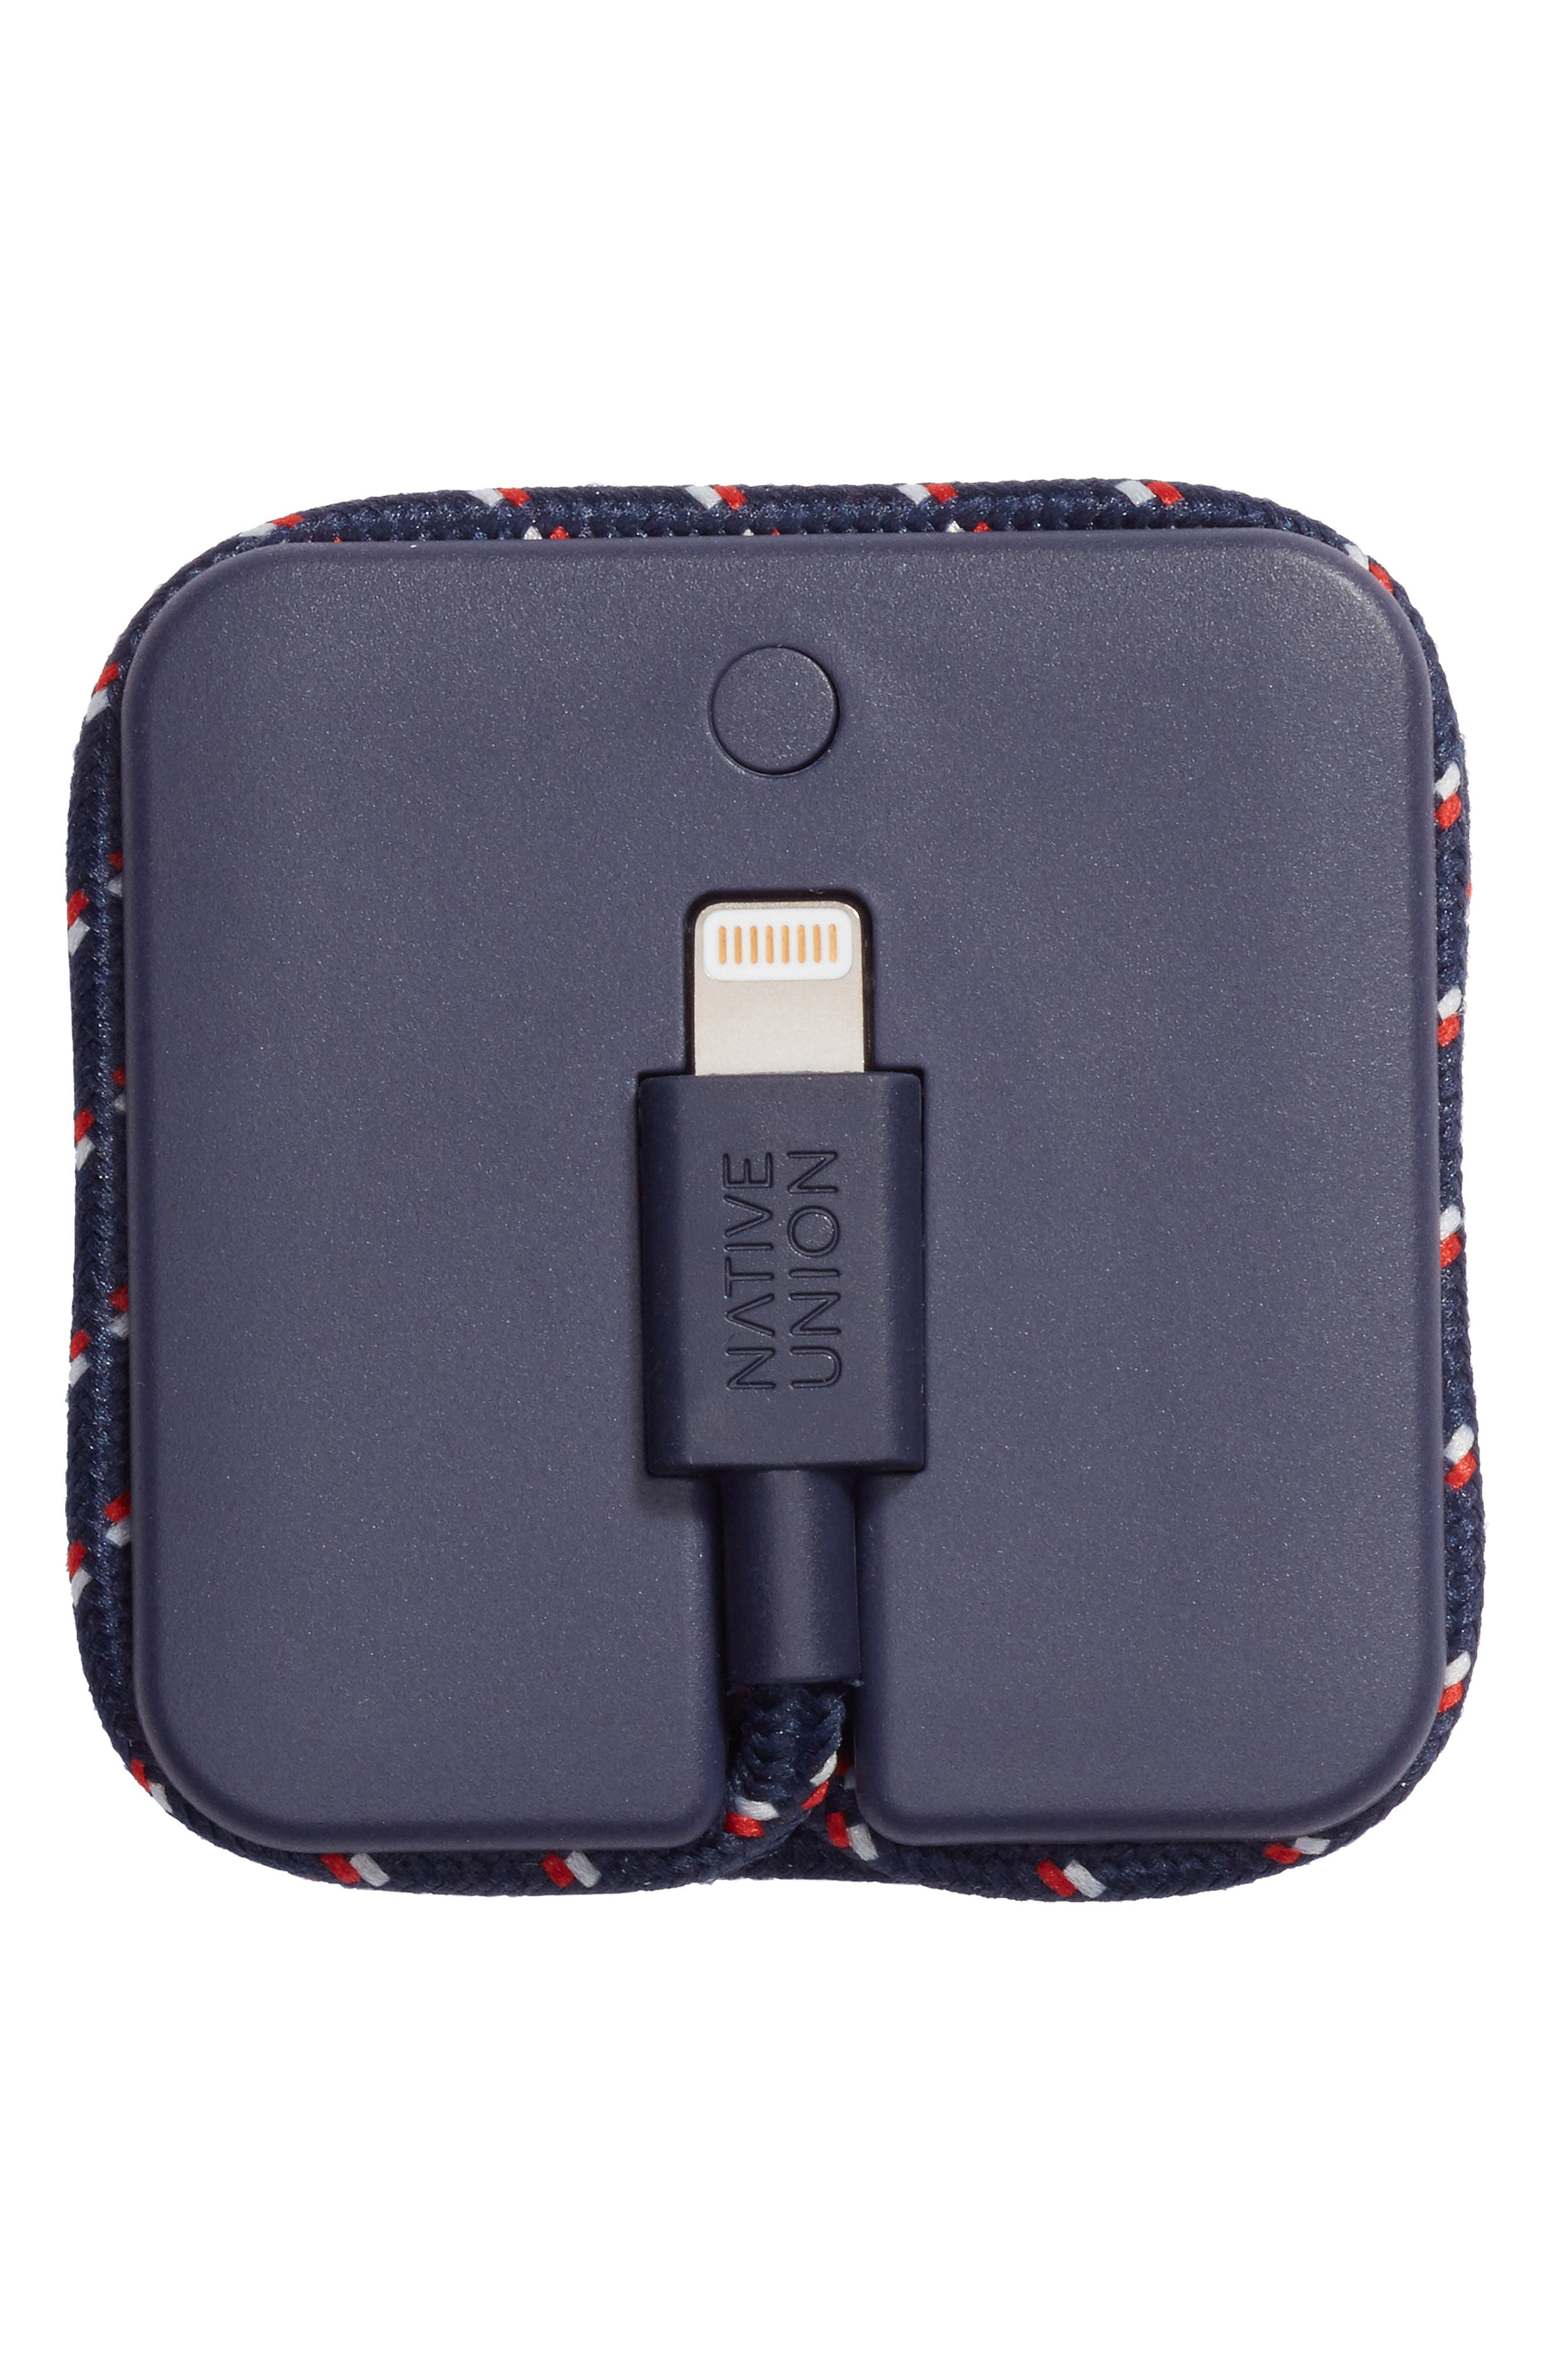 Native Union Jump Lightning Charging Cable & Power Bank